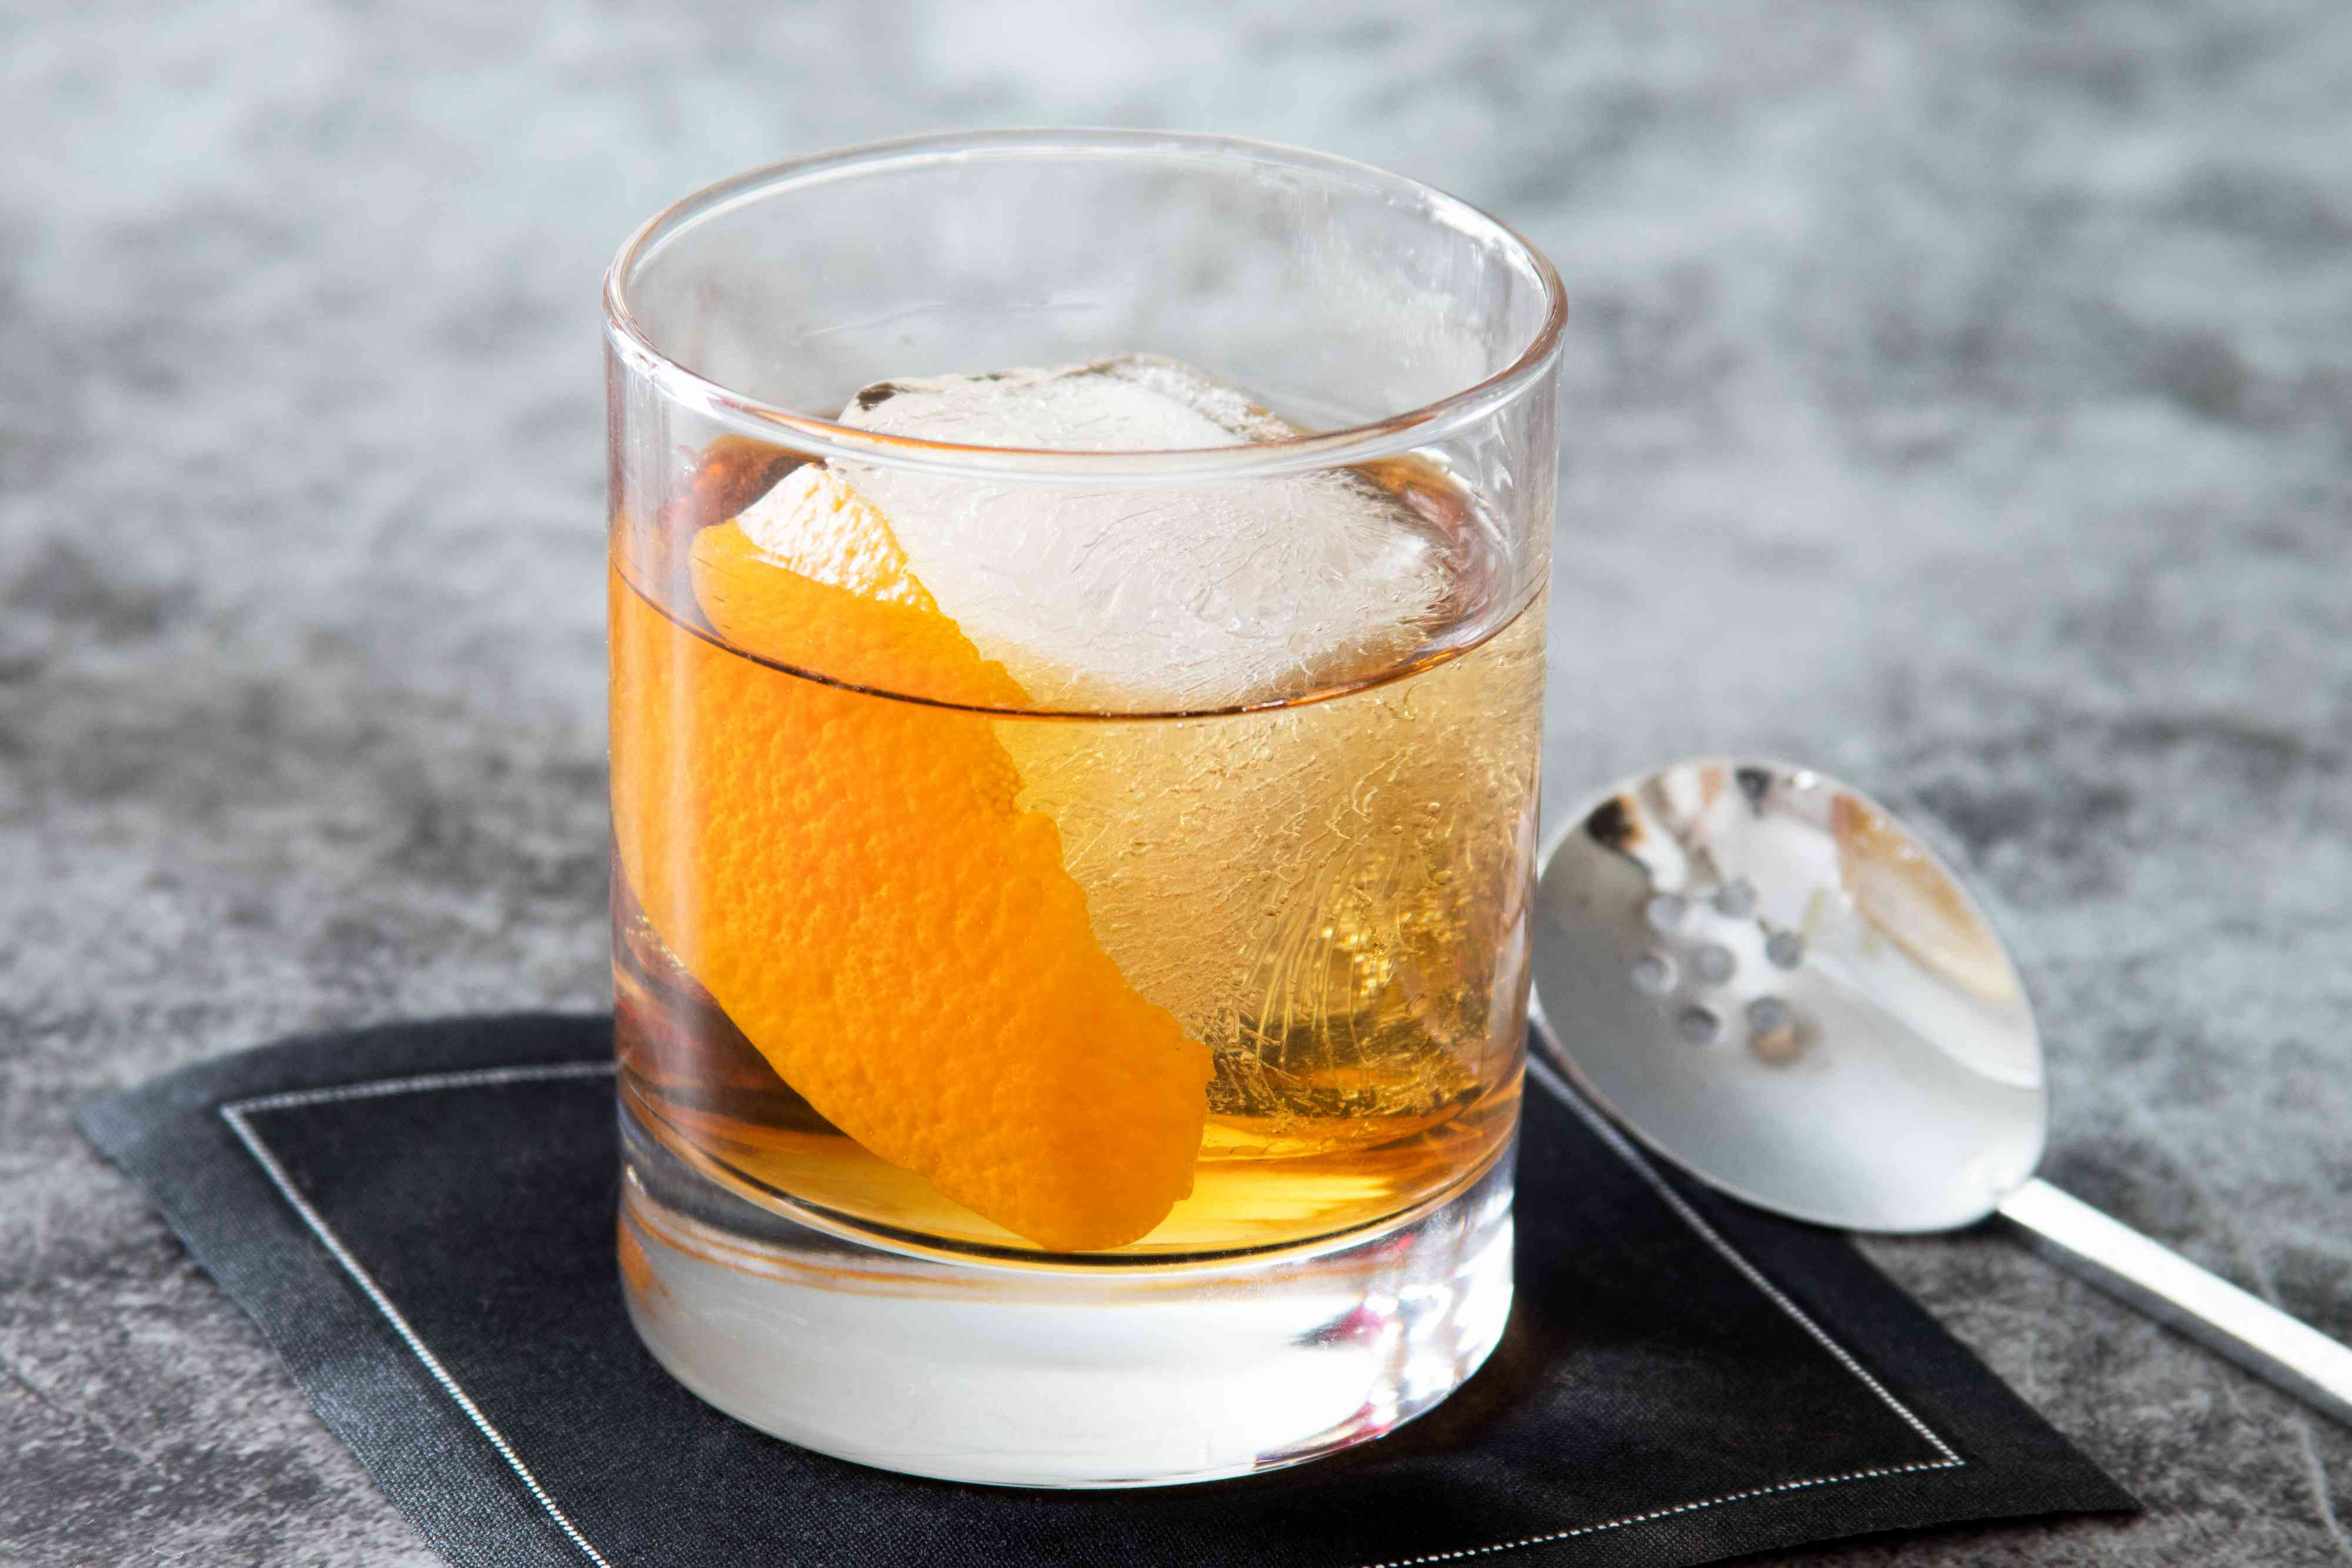 Rum Old-Fashioned Cocktail with orange peel